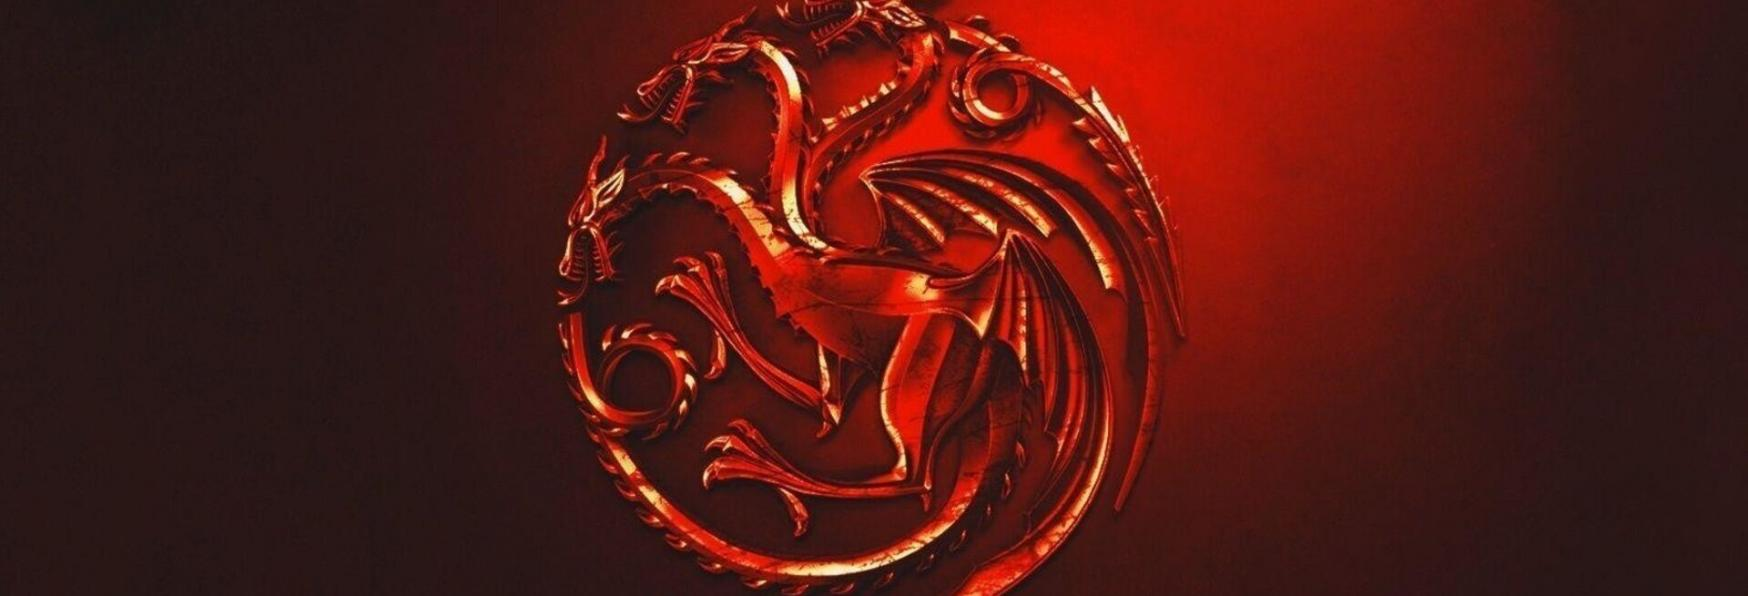 House of the Dragon: è Ufficialmente Iniziata la Produzione dell'atteso Spin-Off di Game of Thrones